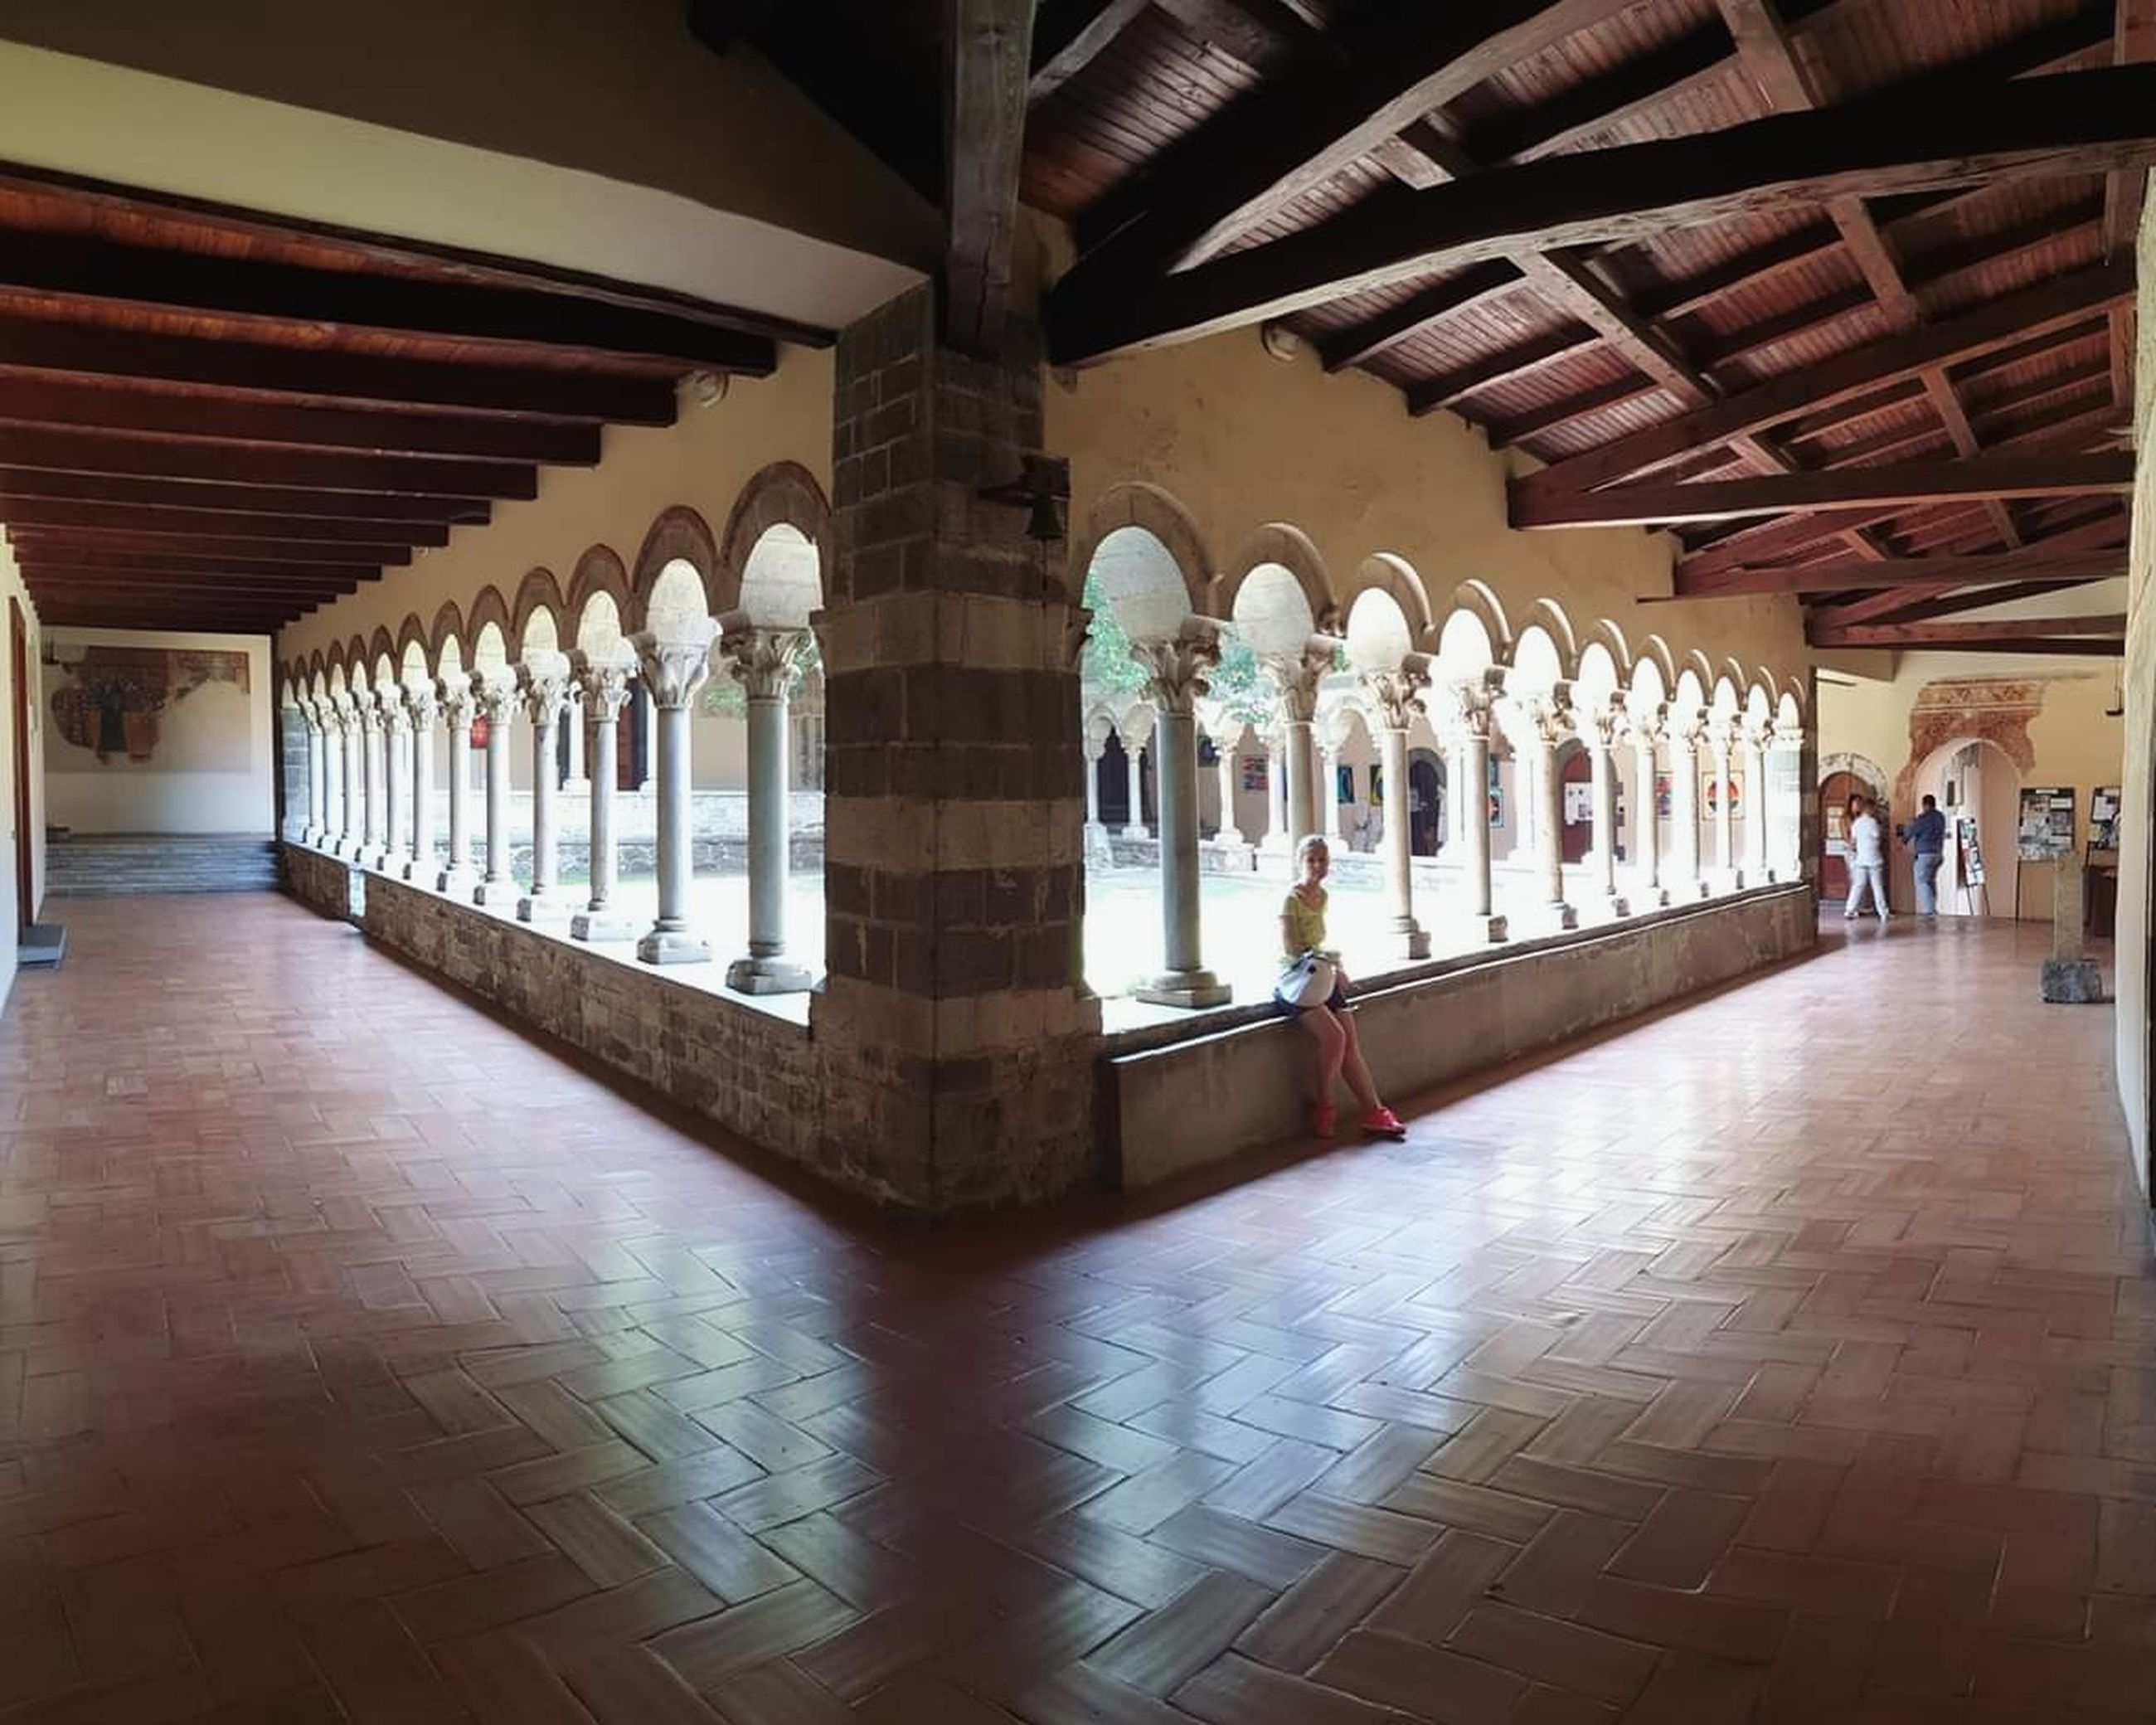 architecture, architectural column, built structure, indoors, building, incidental people, flooring, in a row, the past, arcade, colonnade, history, group of people, ceiling, day, place of worship, corridor, tile, tiled floor, women